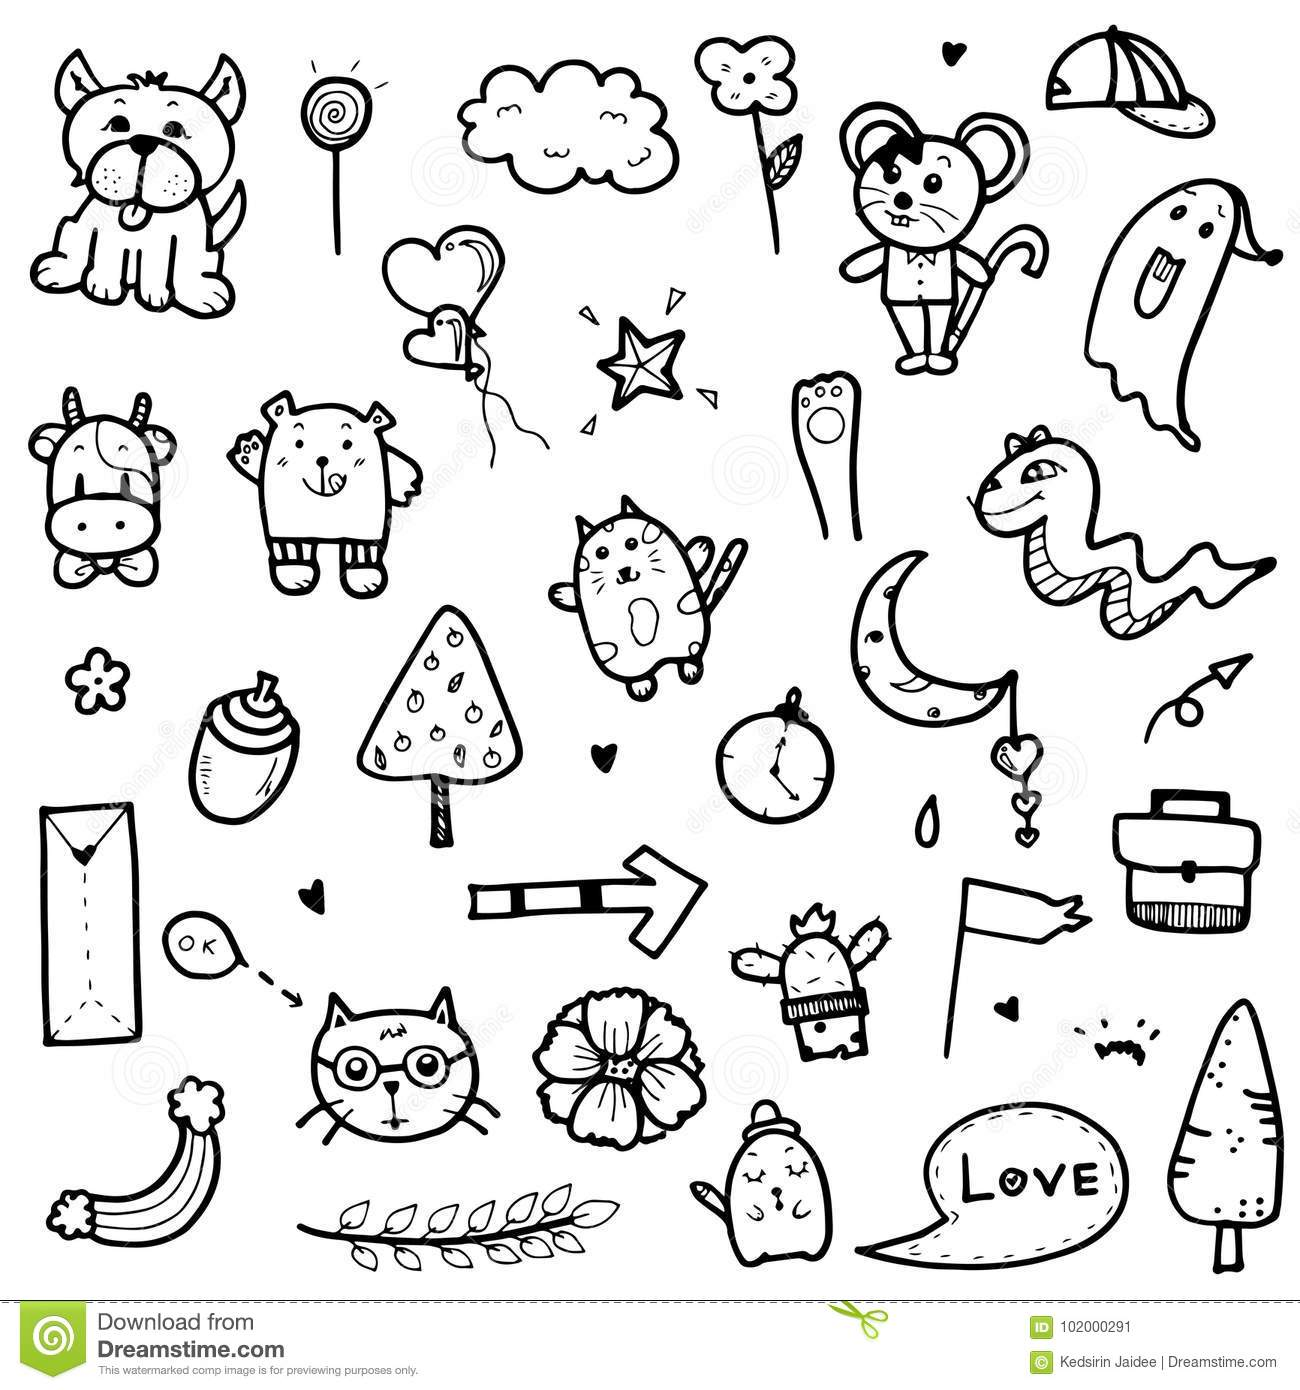 doodles cute vector collection tree animal hand drawn elements arrow illustration objects prints card preview